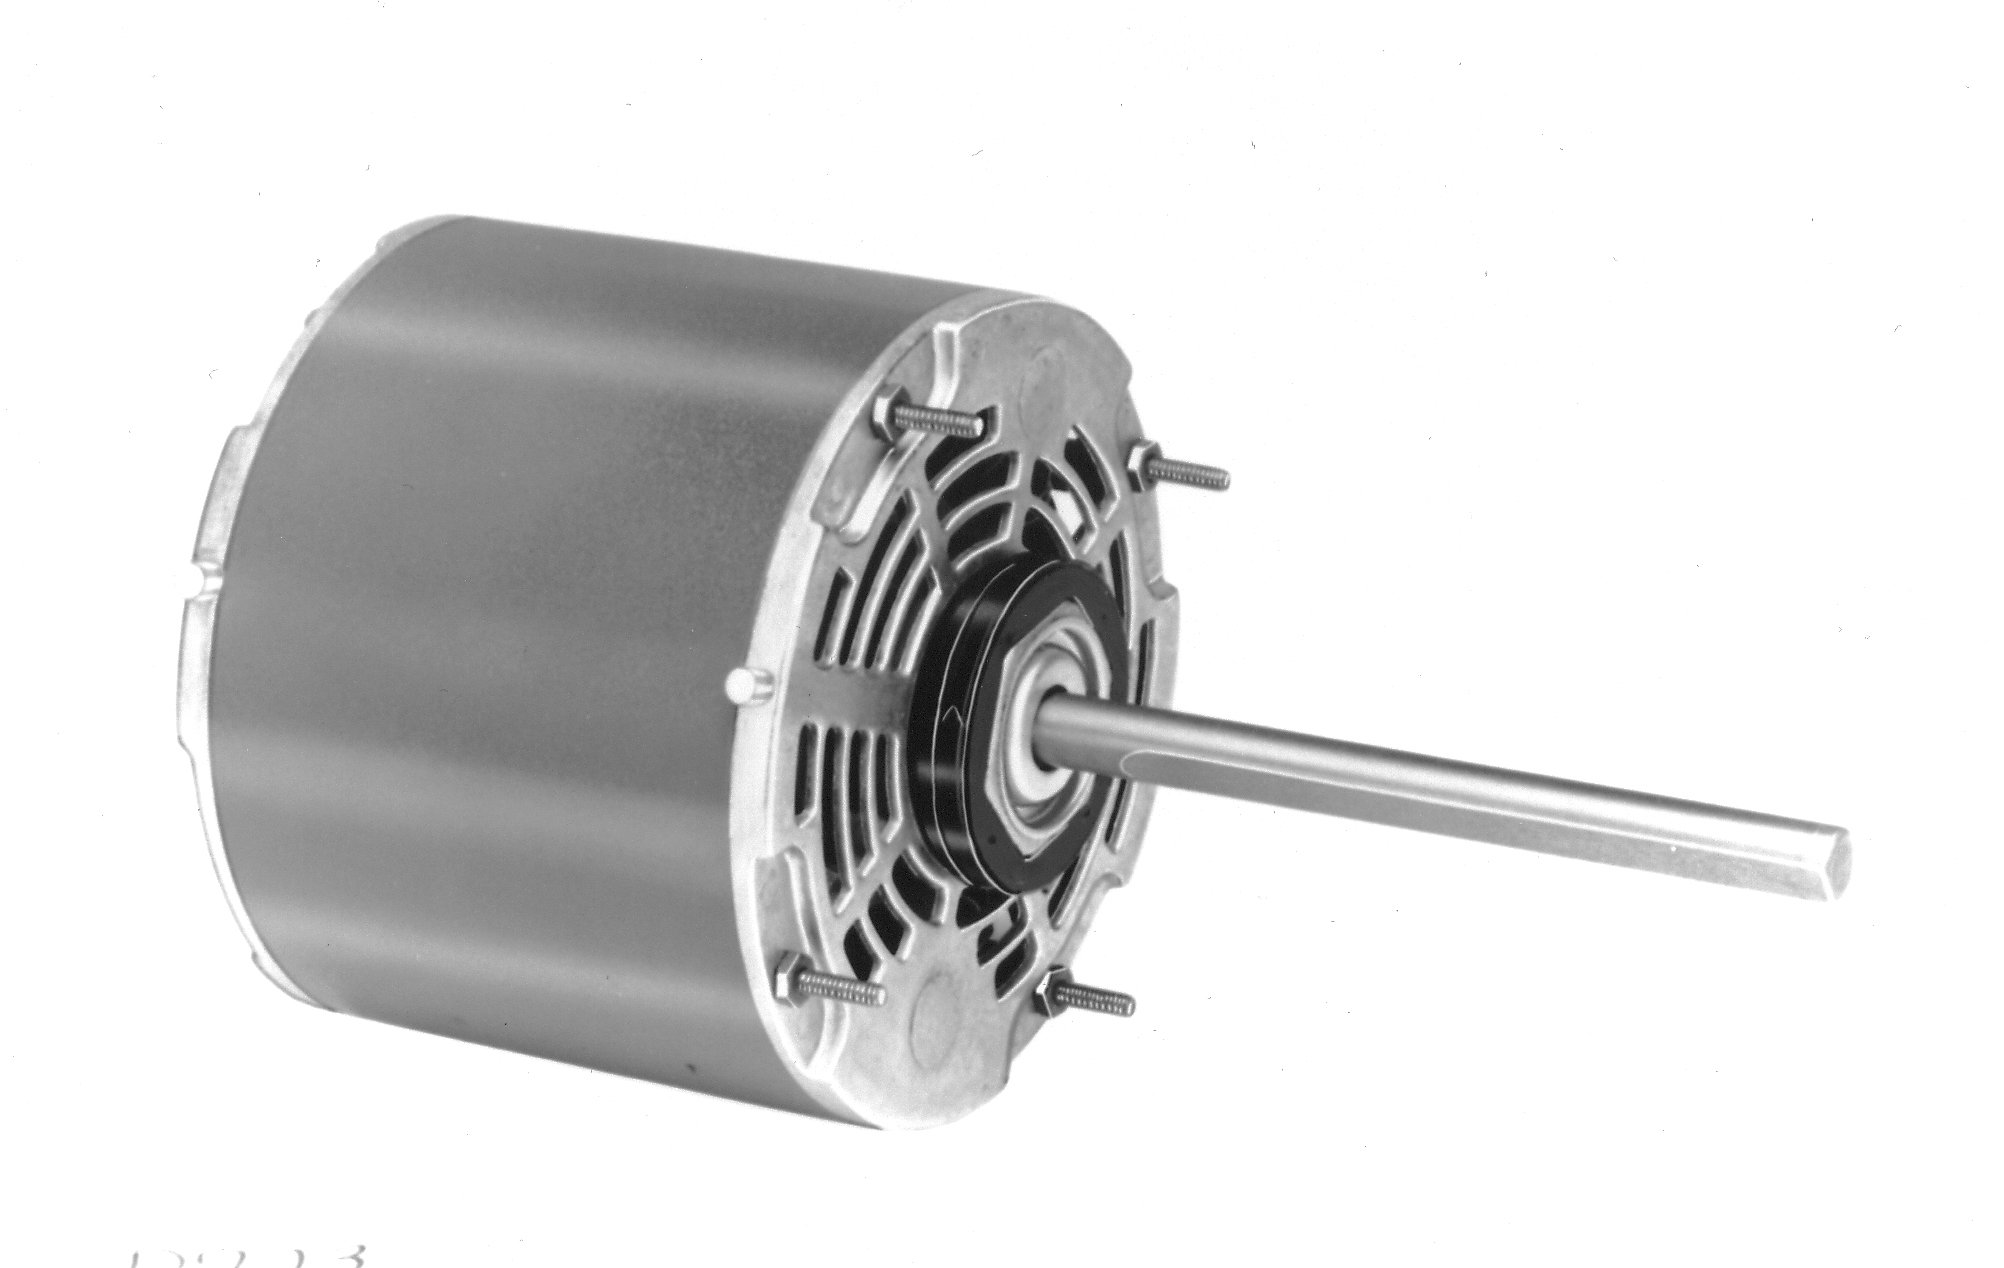 Fasco D923 5.6-Inch Direct Drive Blower Motor, 1/3 HP, 208-230 Volts, 1075 RPM, 3 Speed, 2.9 Amps, OAO Enclosure, Reversible Rotation, Sleeve Bearing